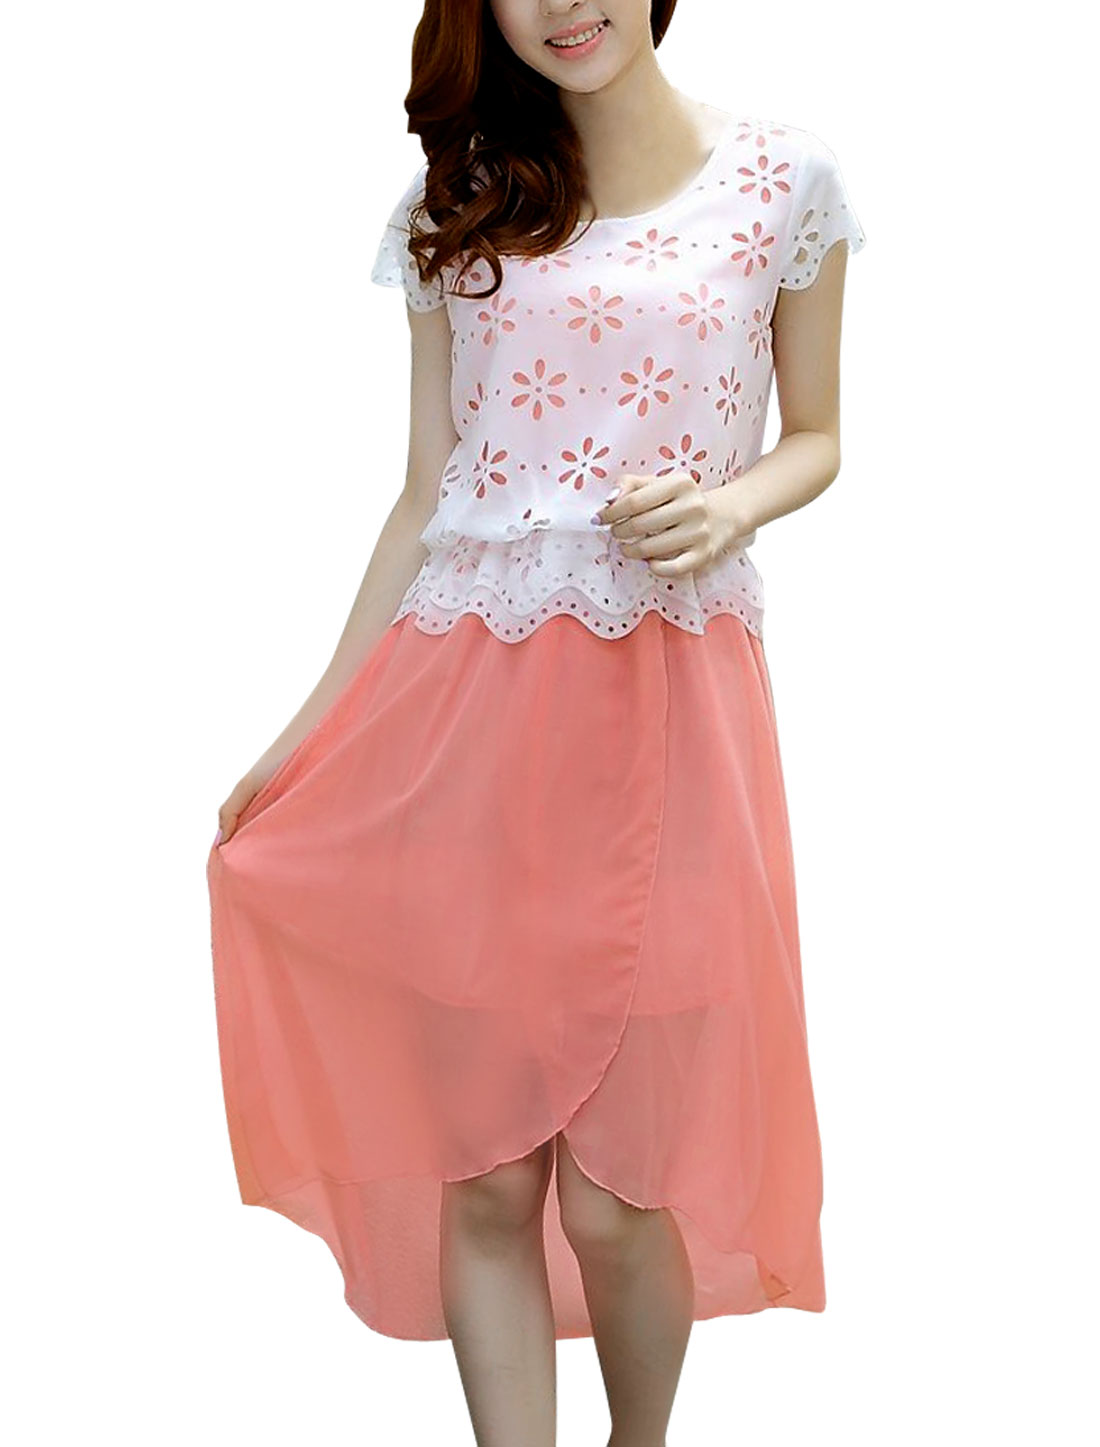 Ladies Round Neck Cap Sleeve Elastic Waist Dress Pink White S